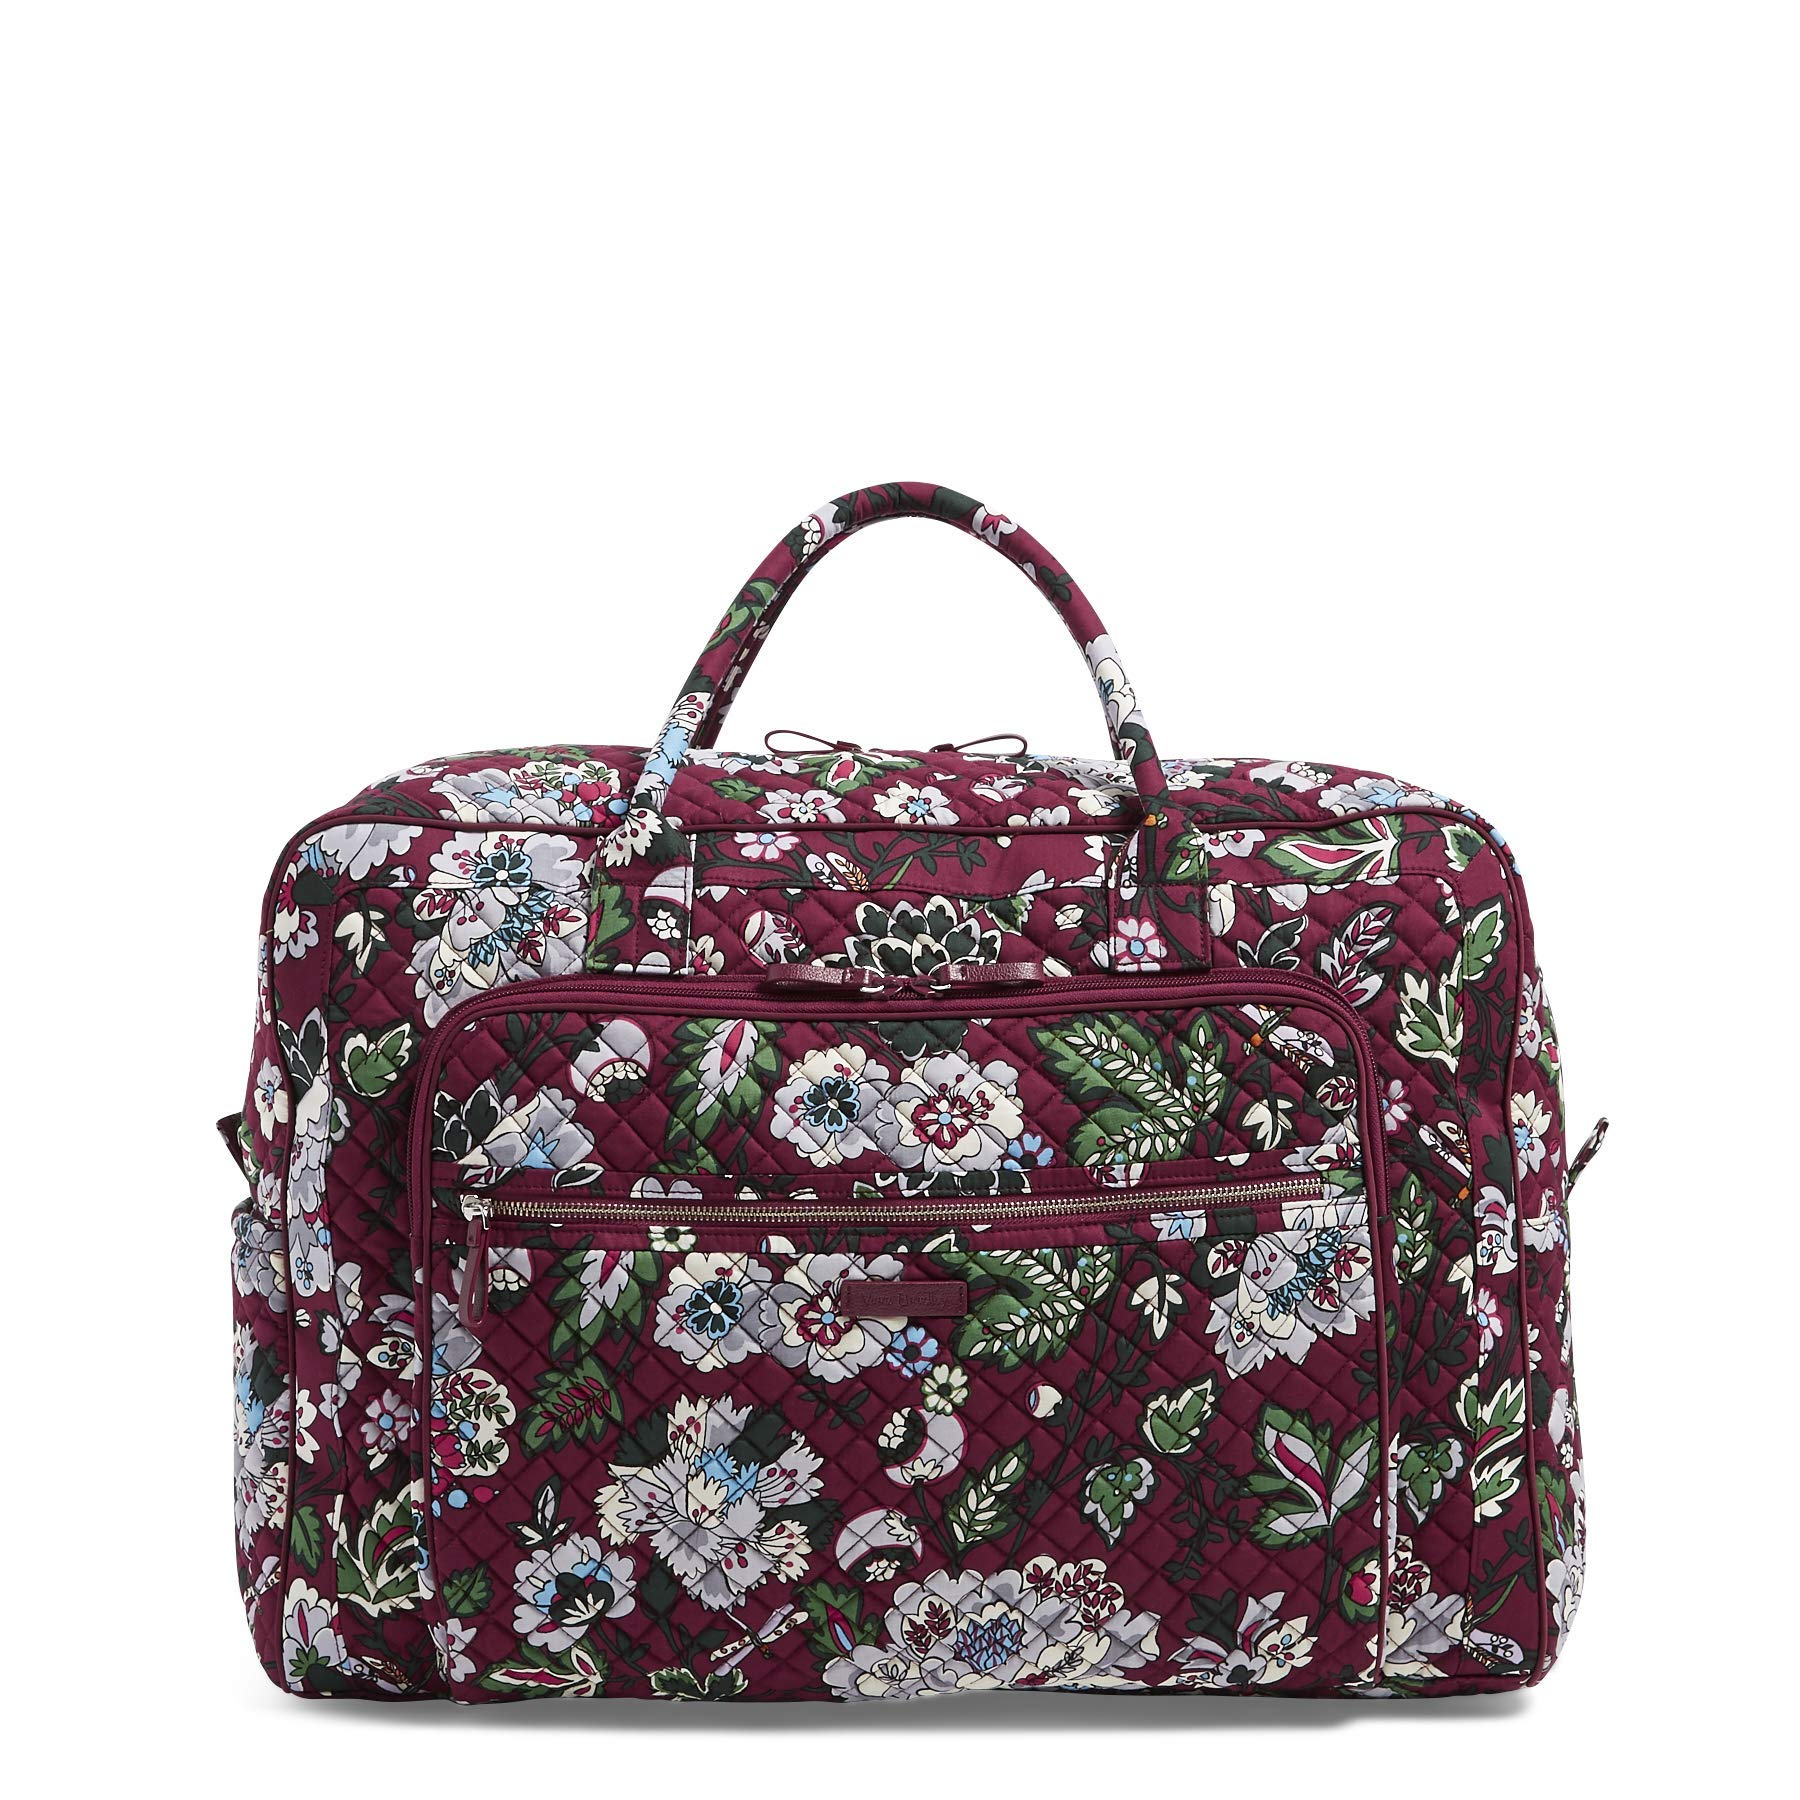 Vera Bradley Iconic Grand Weekender Travel Bag, Signature Cotton, bordeaux blooms